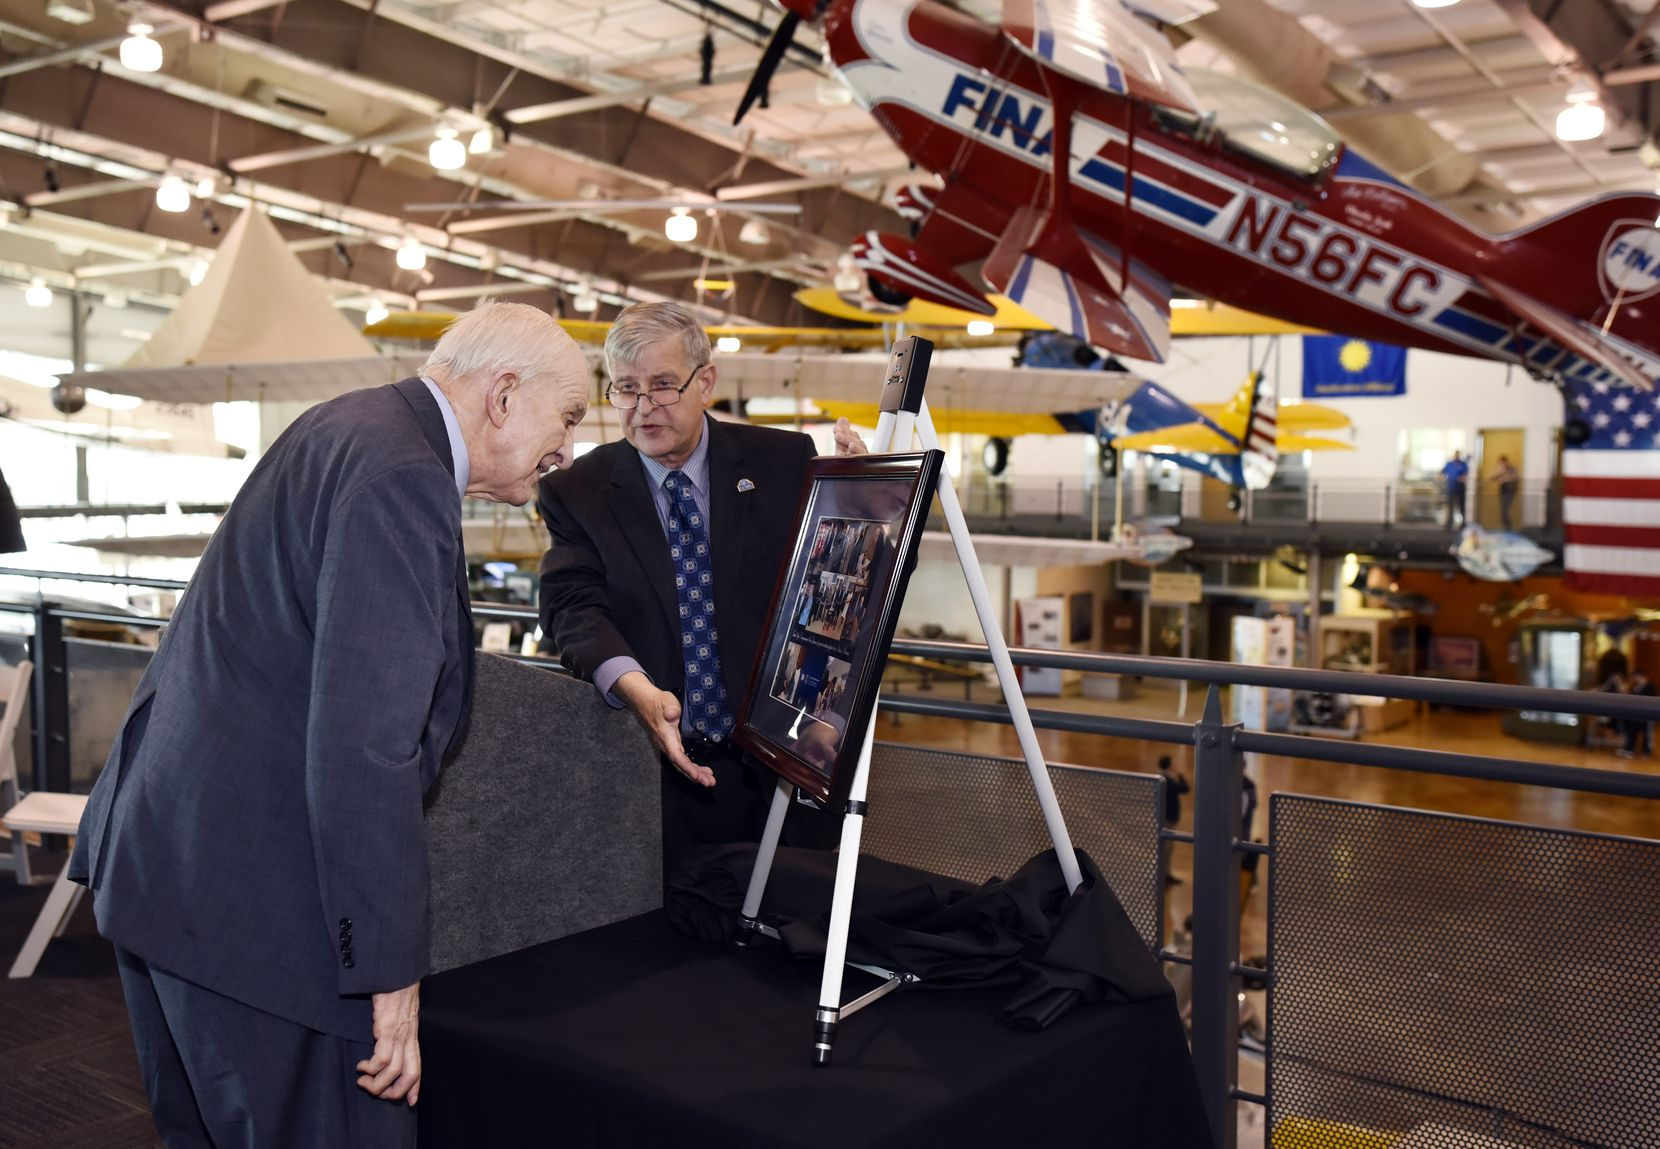 Stephen Holt of the Veterans Administration North Texas Health Care System presented a photo to Rep. Sam Johnson in honor of National Former Prisoner of War Recognition Day on April 20, 2018, at the Frontiers of Flight Museum at Dallas Love Field.